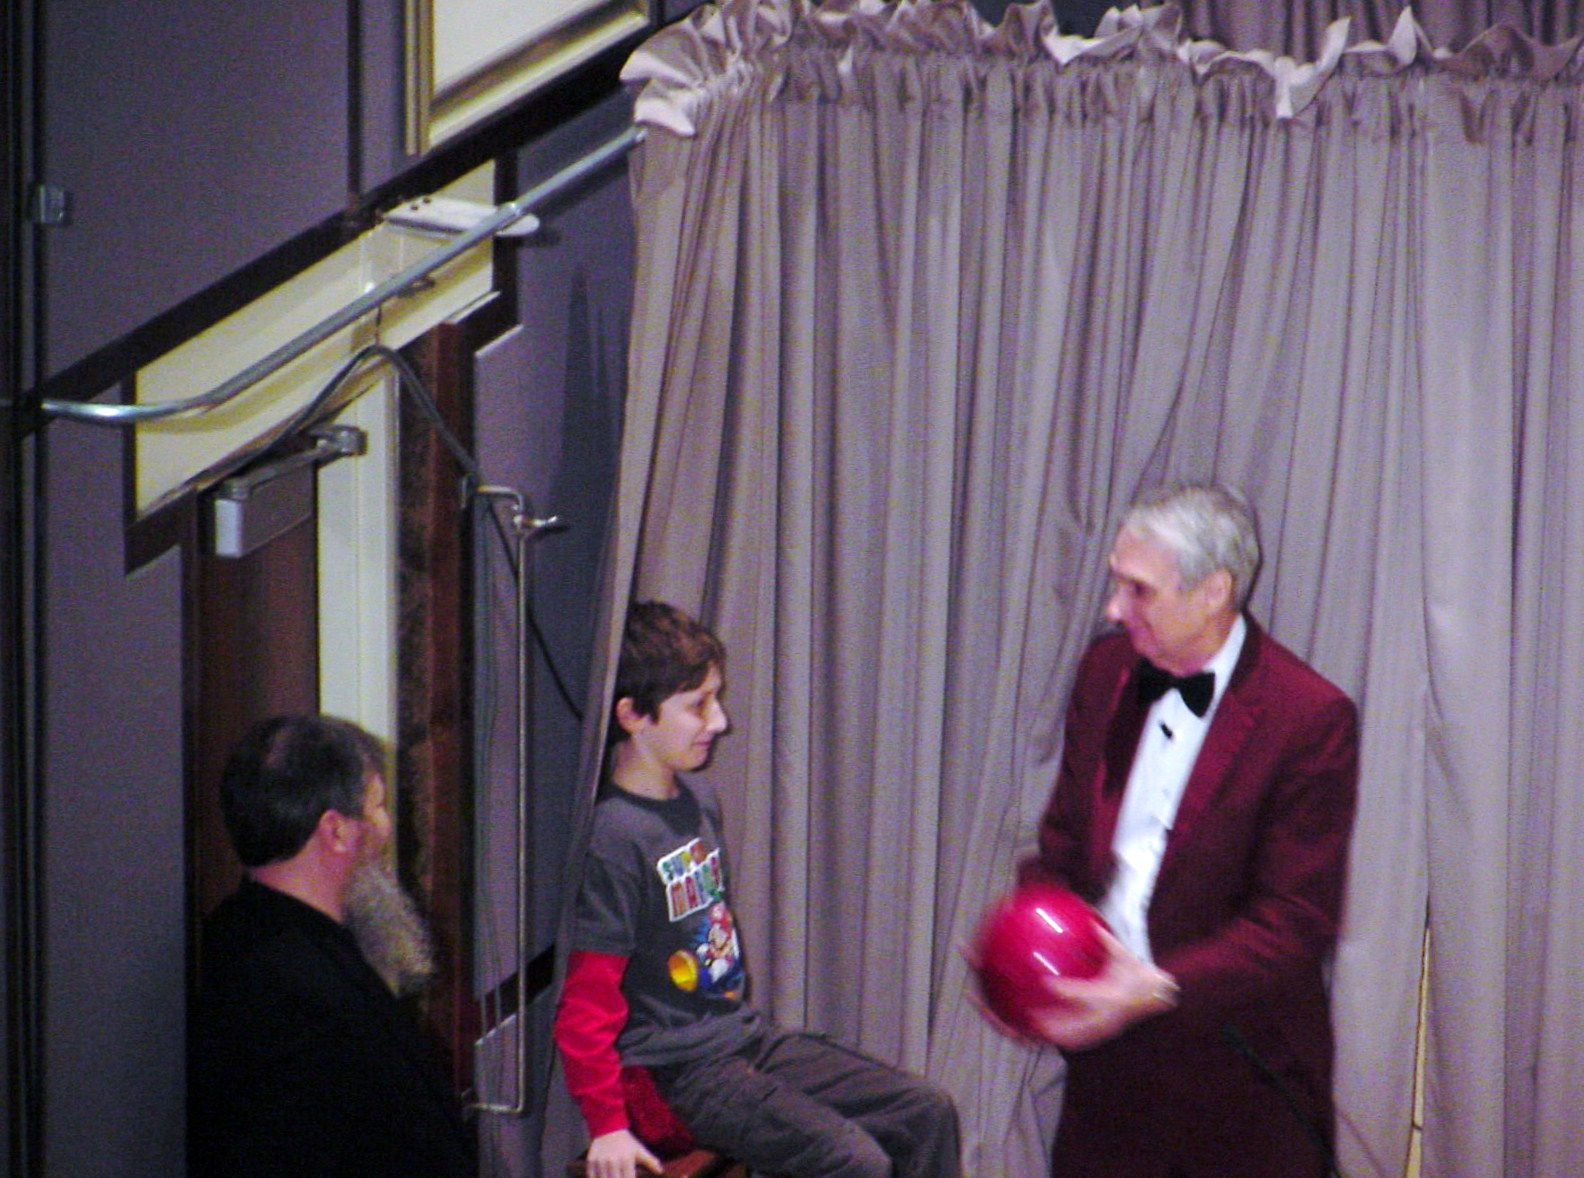 Man shows boy a ball on stage